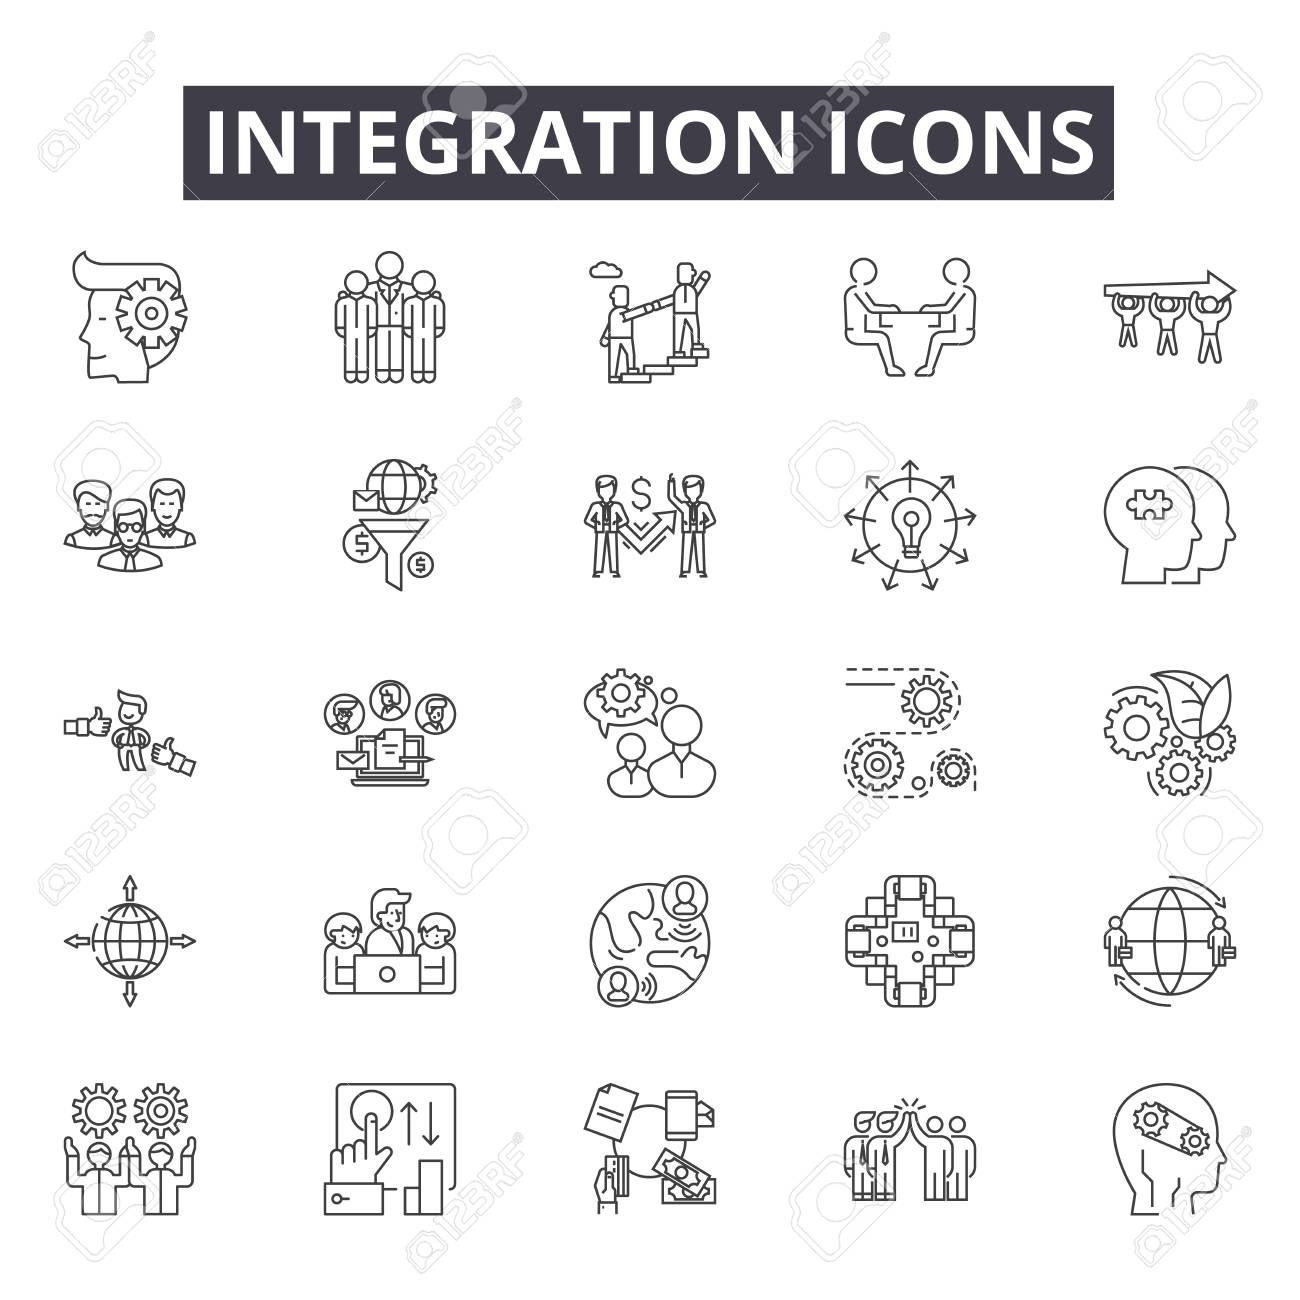 Integration line icons for web and mobile. Editable stroke signs. Integration outline concept illustrations - 119235756